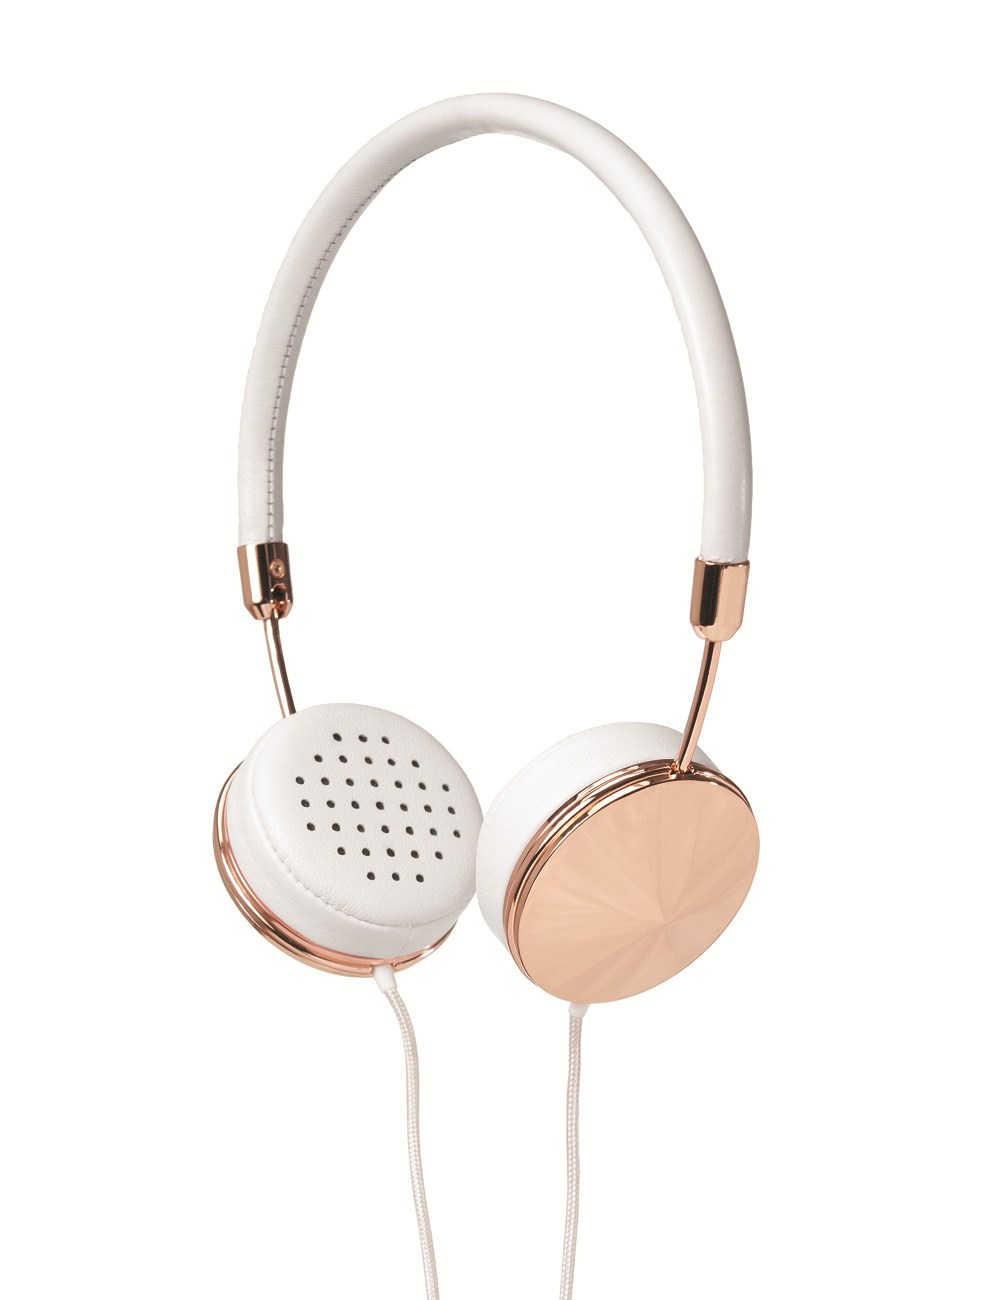 The Leyla Headphones